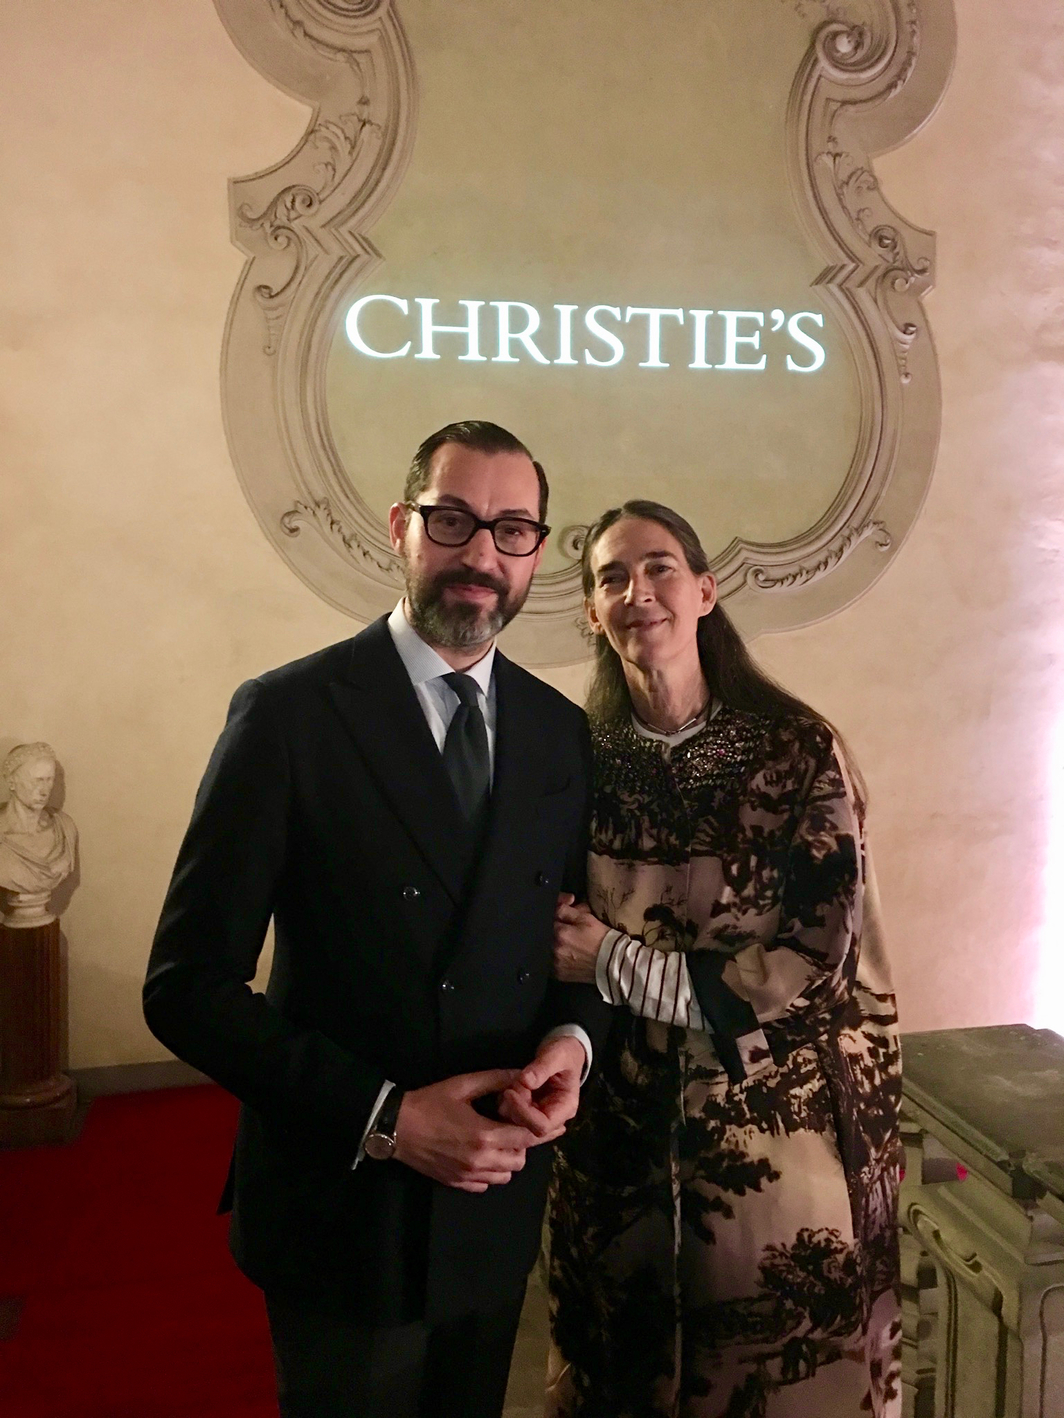 Cristiano De Lorenzo, director Christie's Italy, and Bianca Arrivabene Valenti Gonzaga, Deputy Chairman at Christie's Italy.